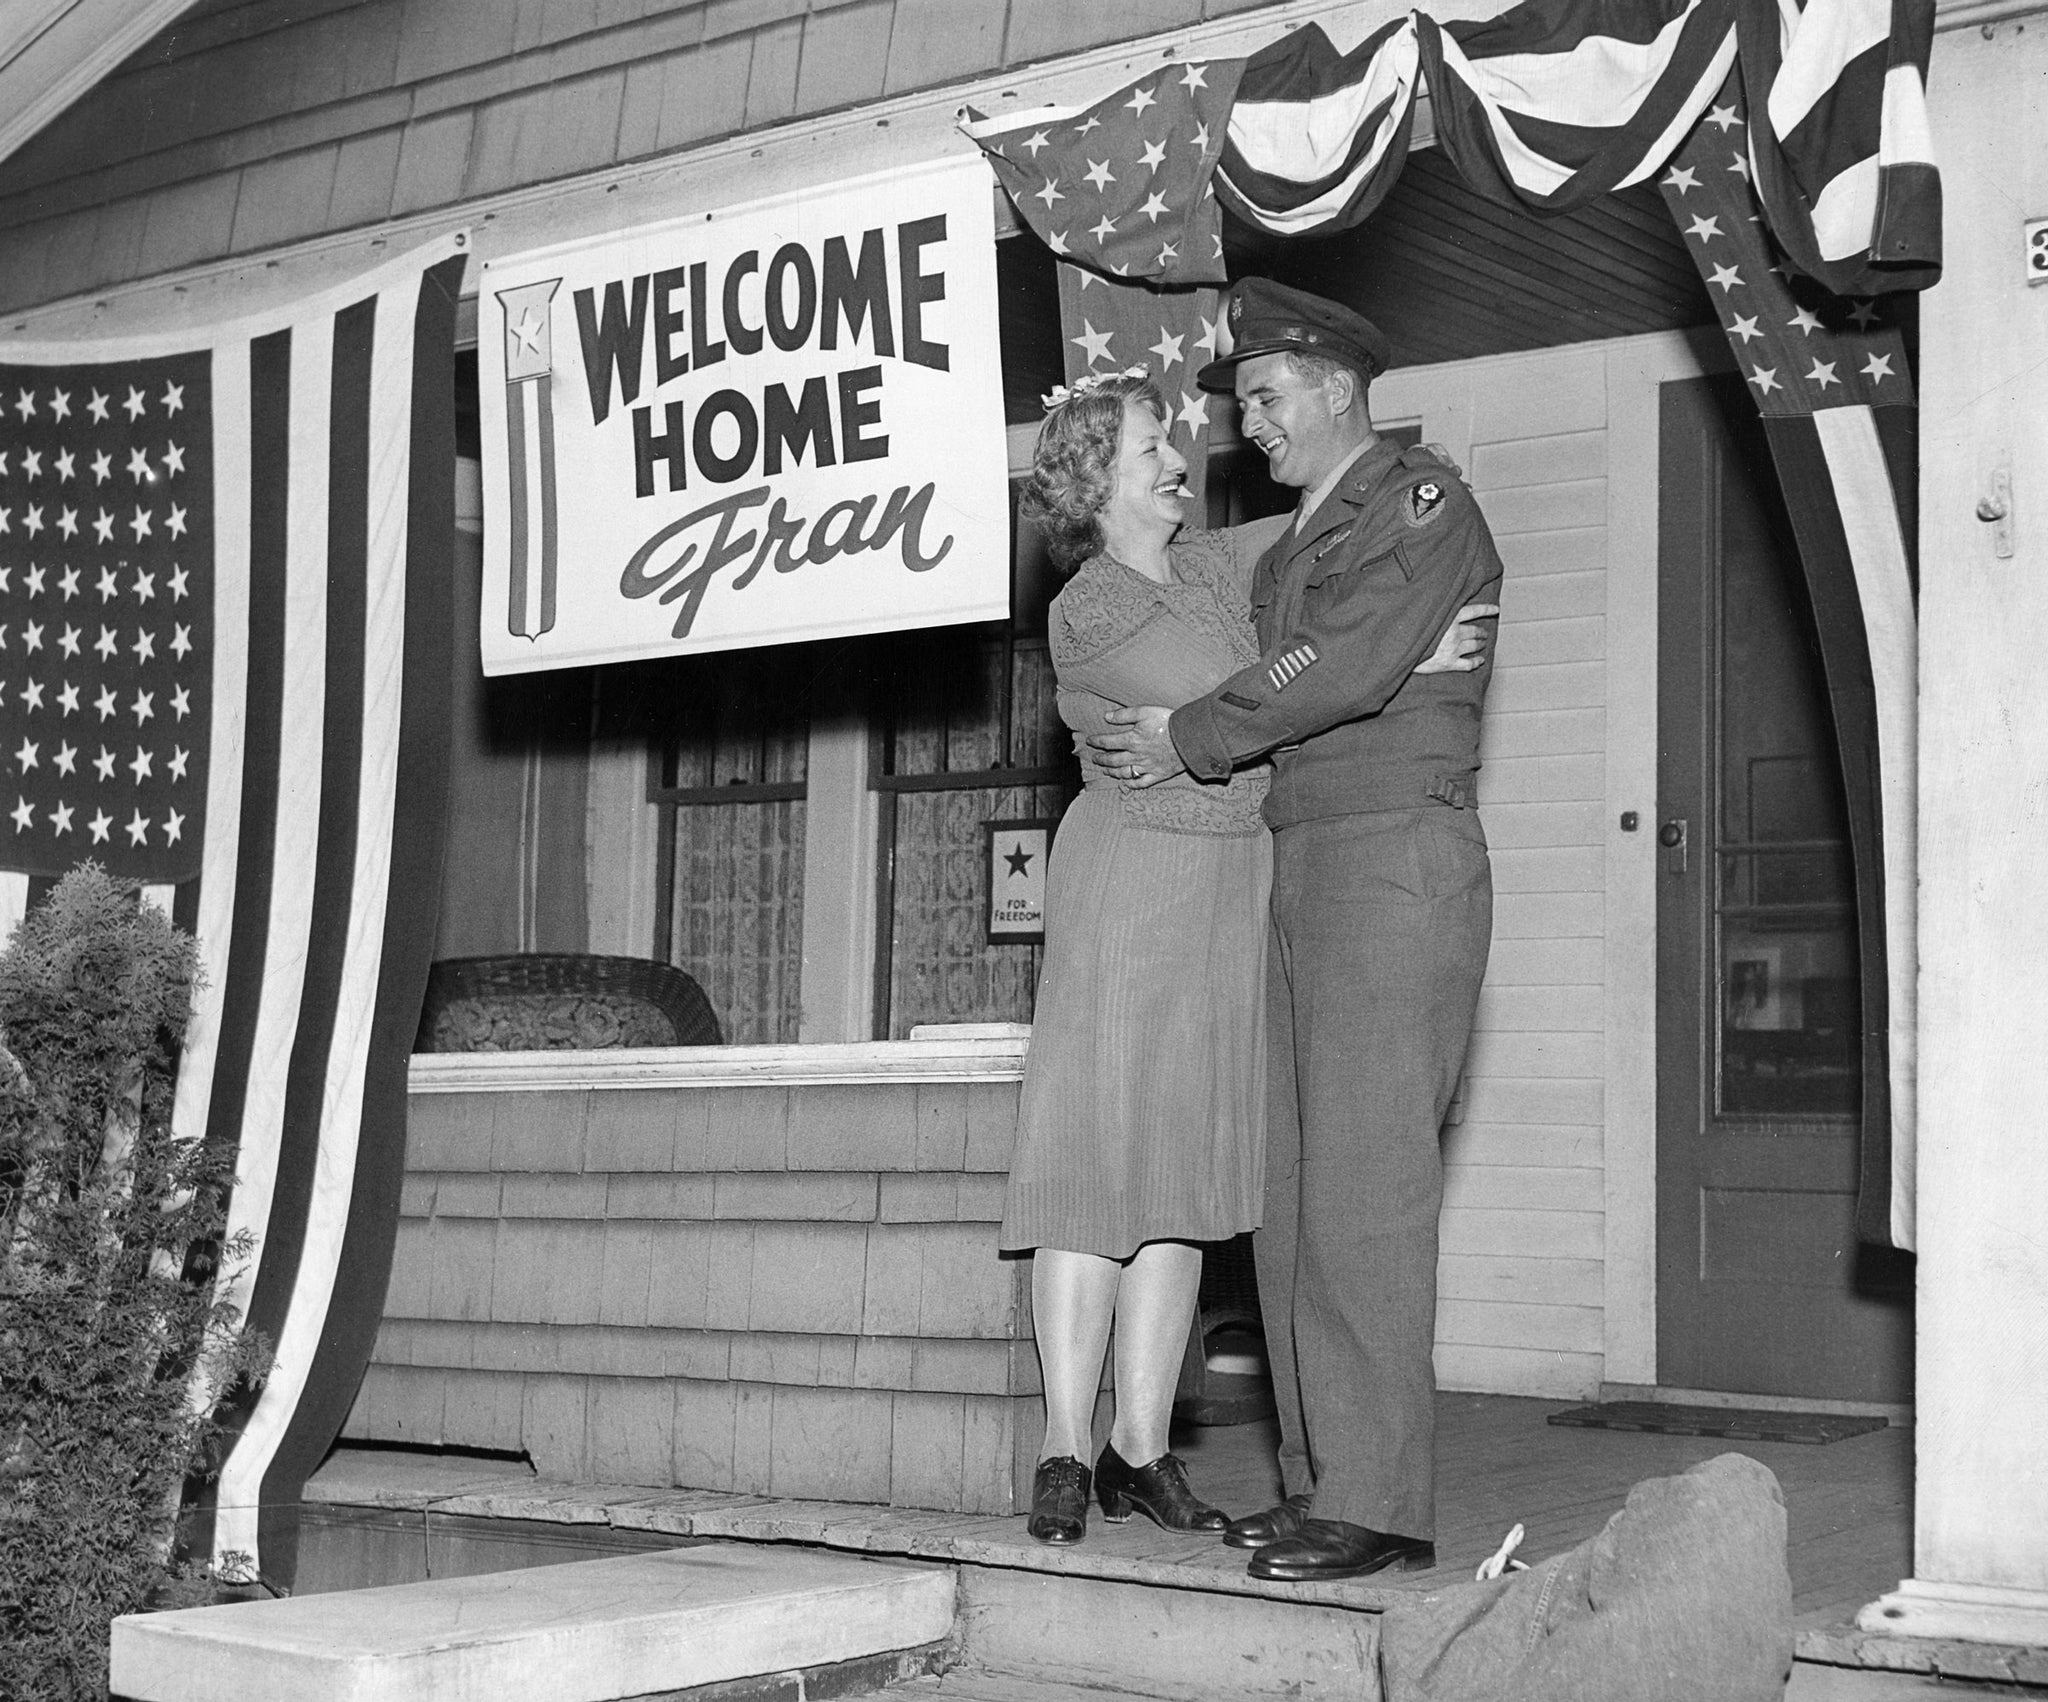 Fran Dickinson comes home from Europe after serving in the Battle of the Bulge, Oct. 12, 1945. He is greeted by his mom, Anna, at their home at 30 Berwyn Ave. -- BILL DICKINSON